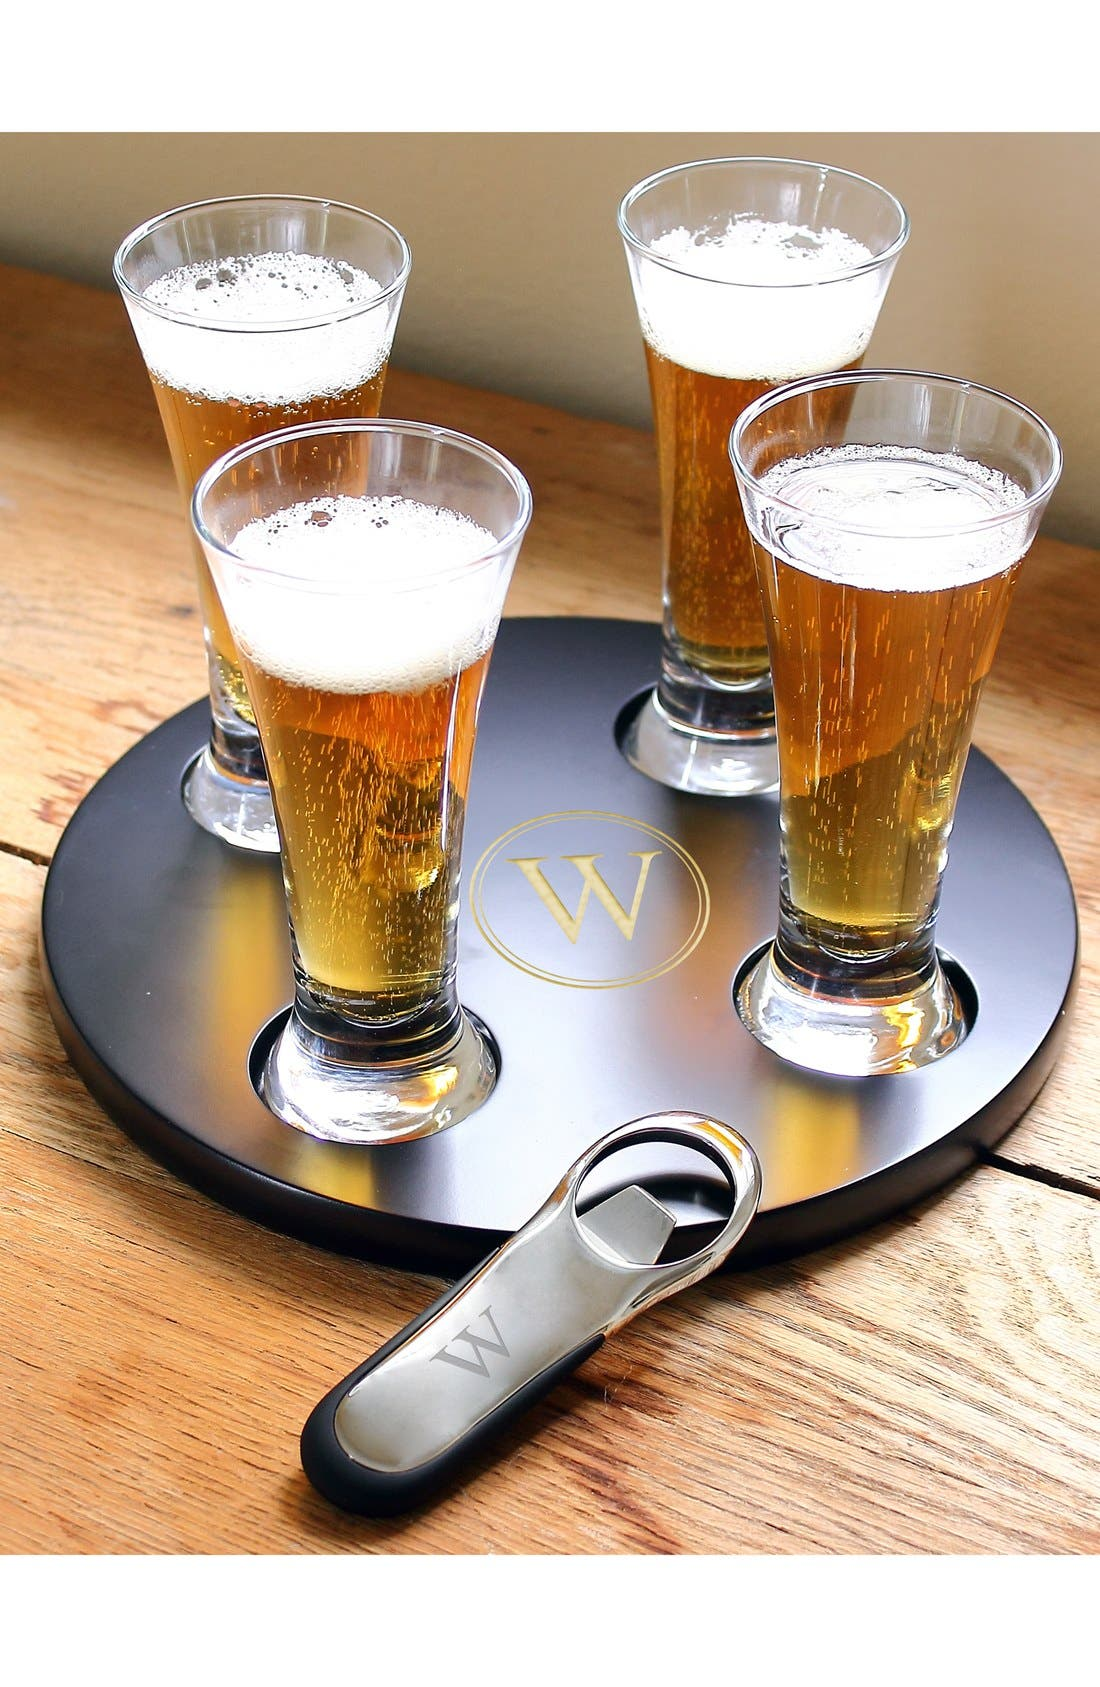 Alternate Image 1 Selected - Cathy's Concepts Personalized Beer Flight Sampler Set (Set of 6)